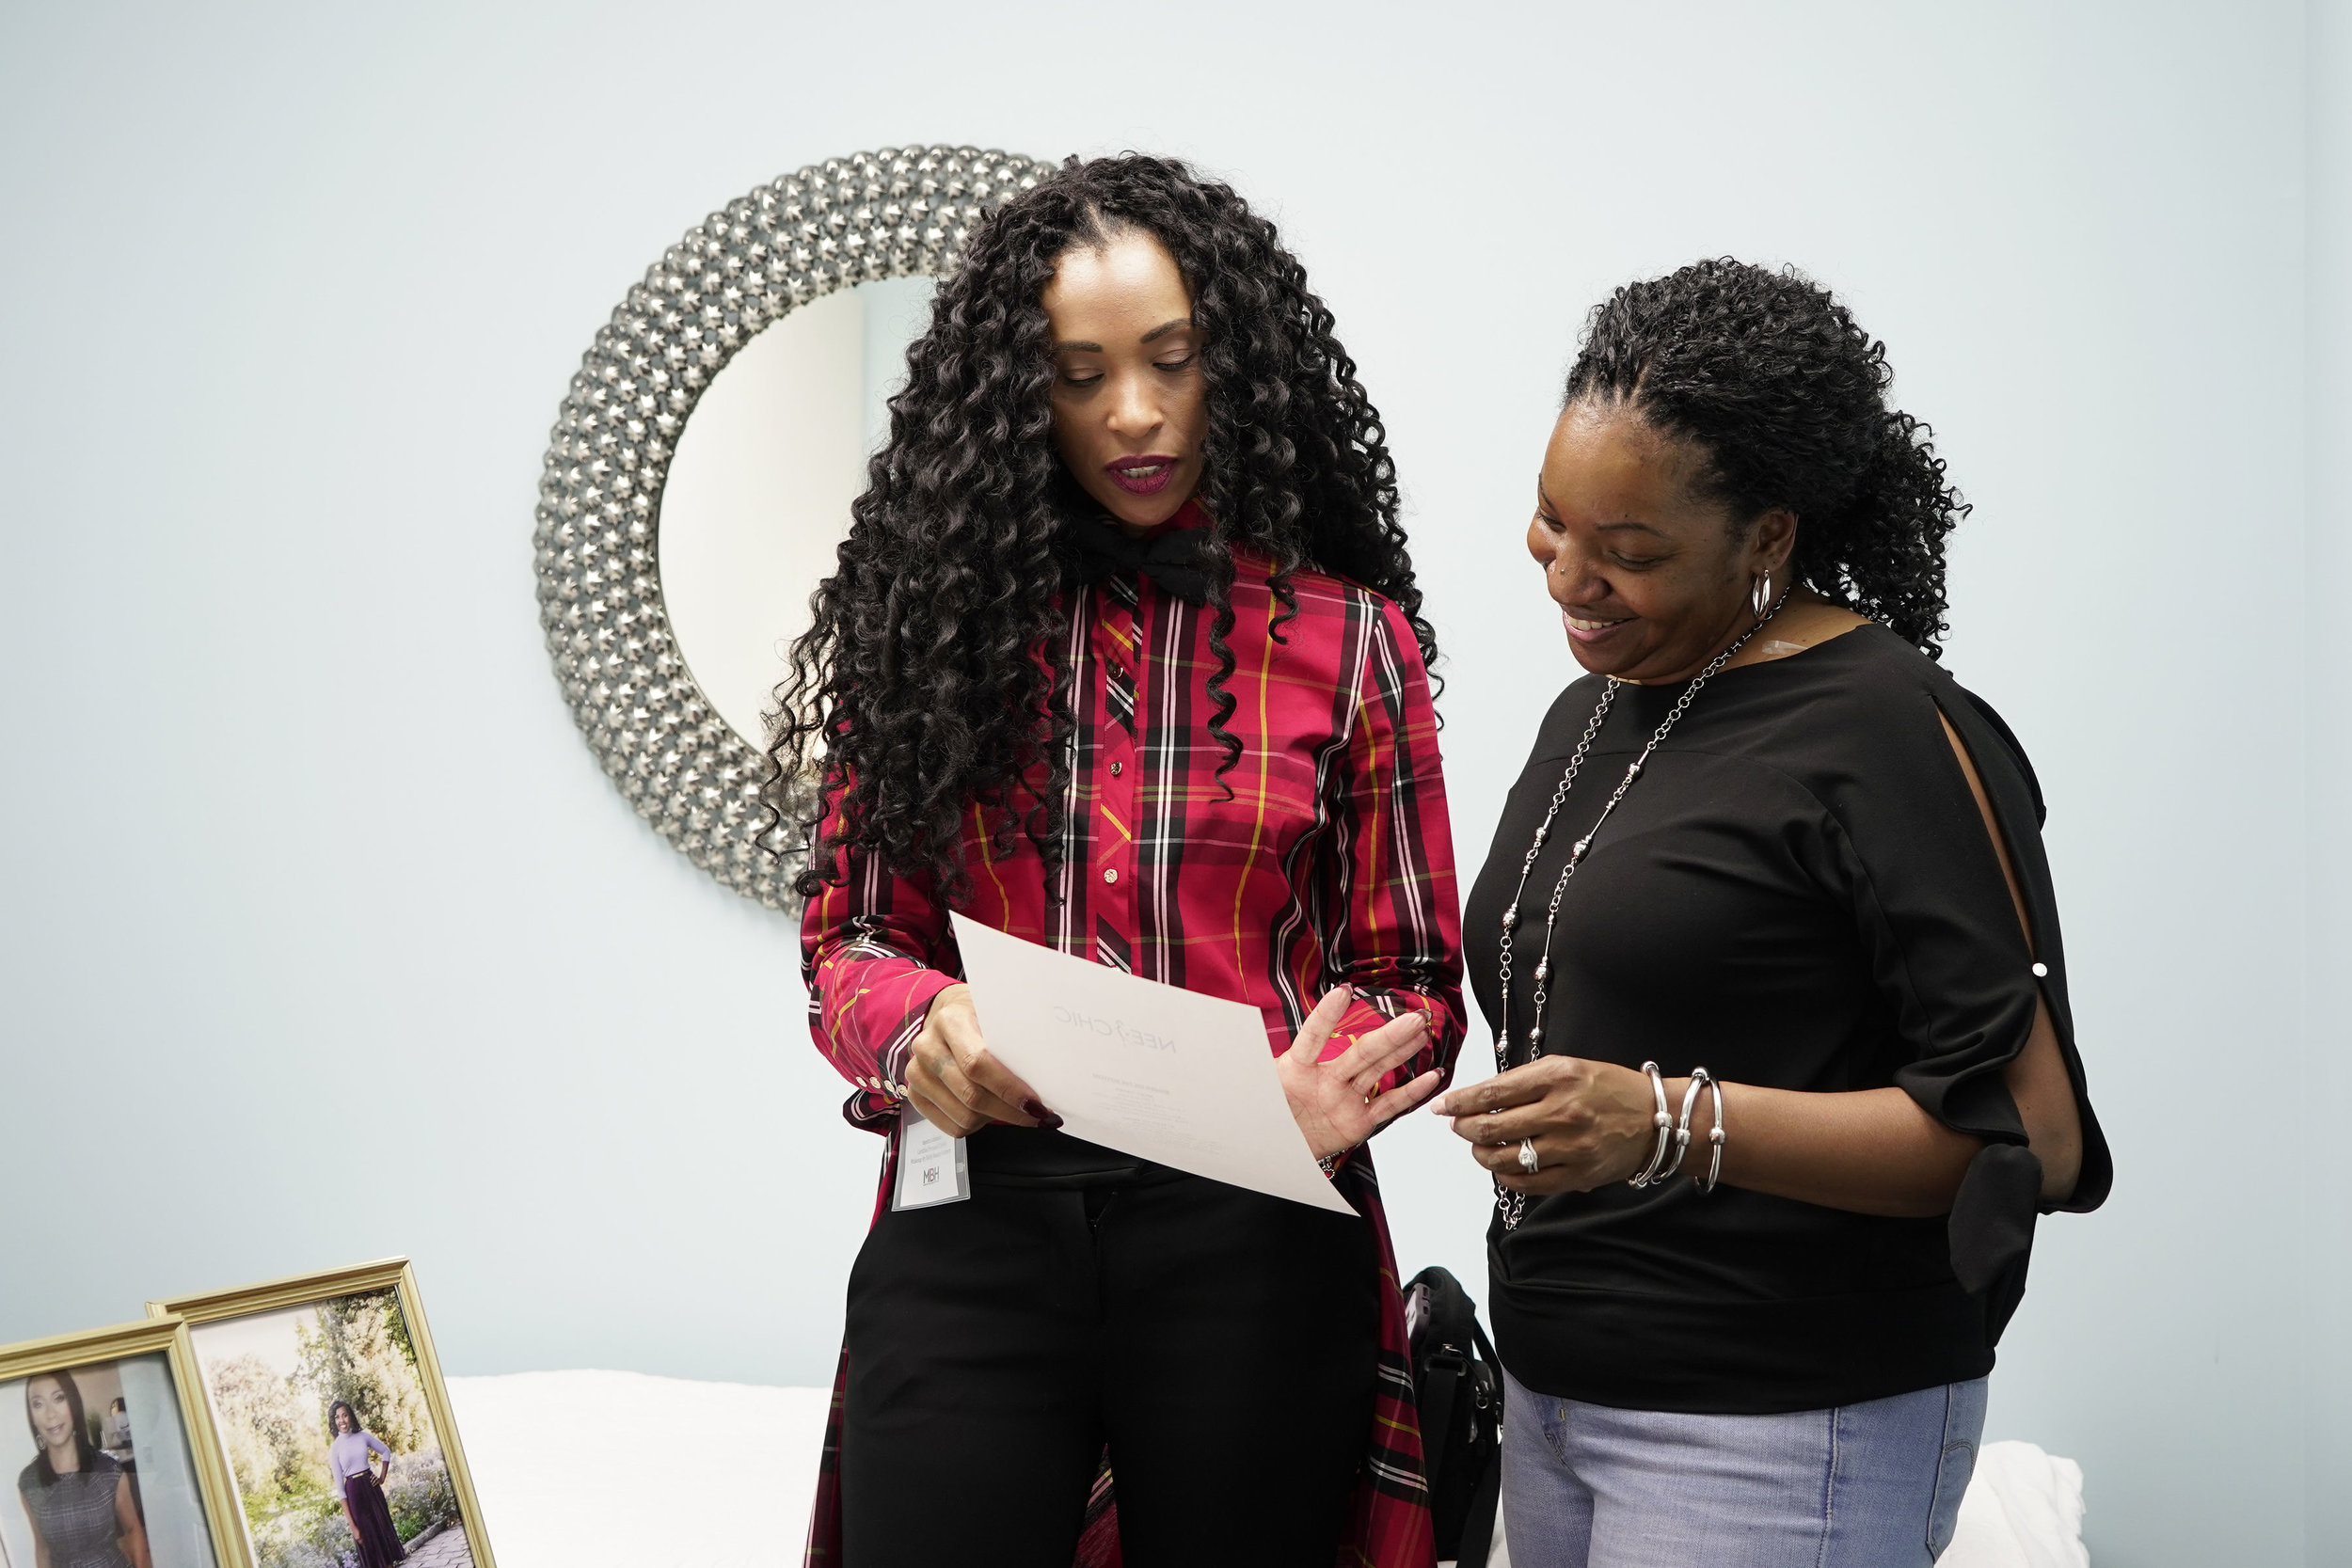 Tailored to your style and needs…. - Whether you're looking to improve your professional or personal image, I always keep 'you', the client, foremost. I want you to feel beautiful, empowered, and confident in your clothing.